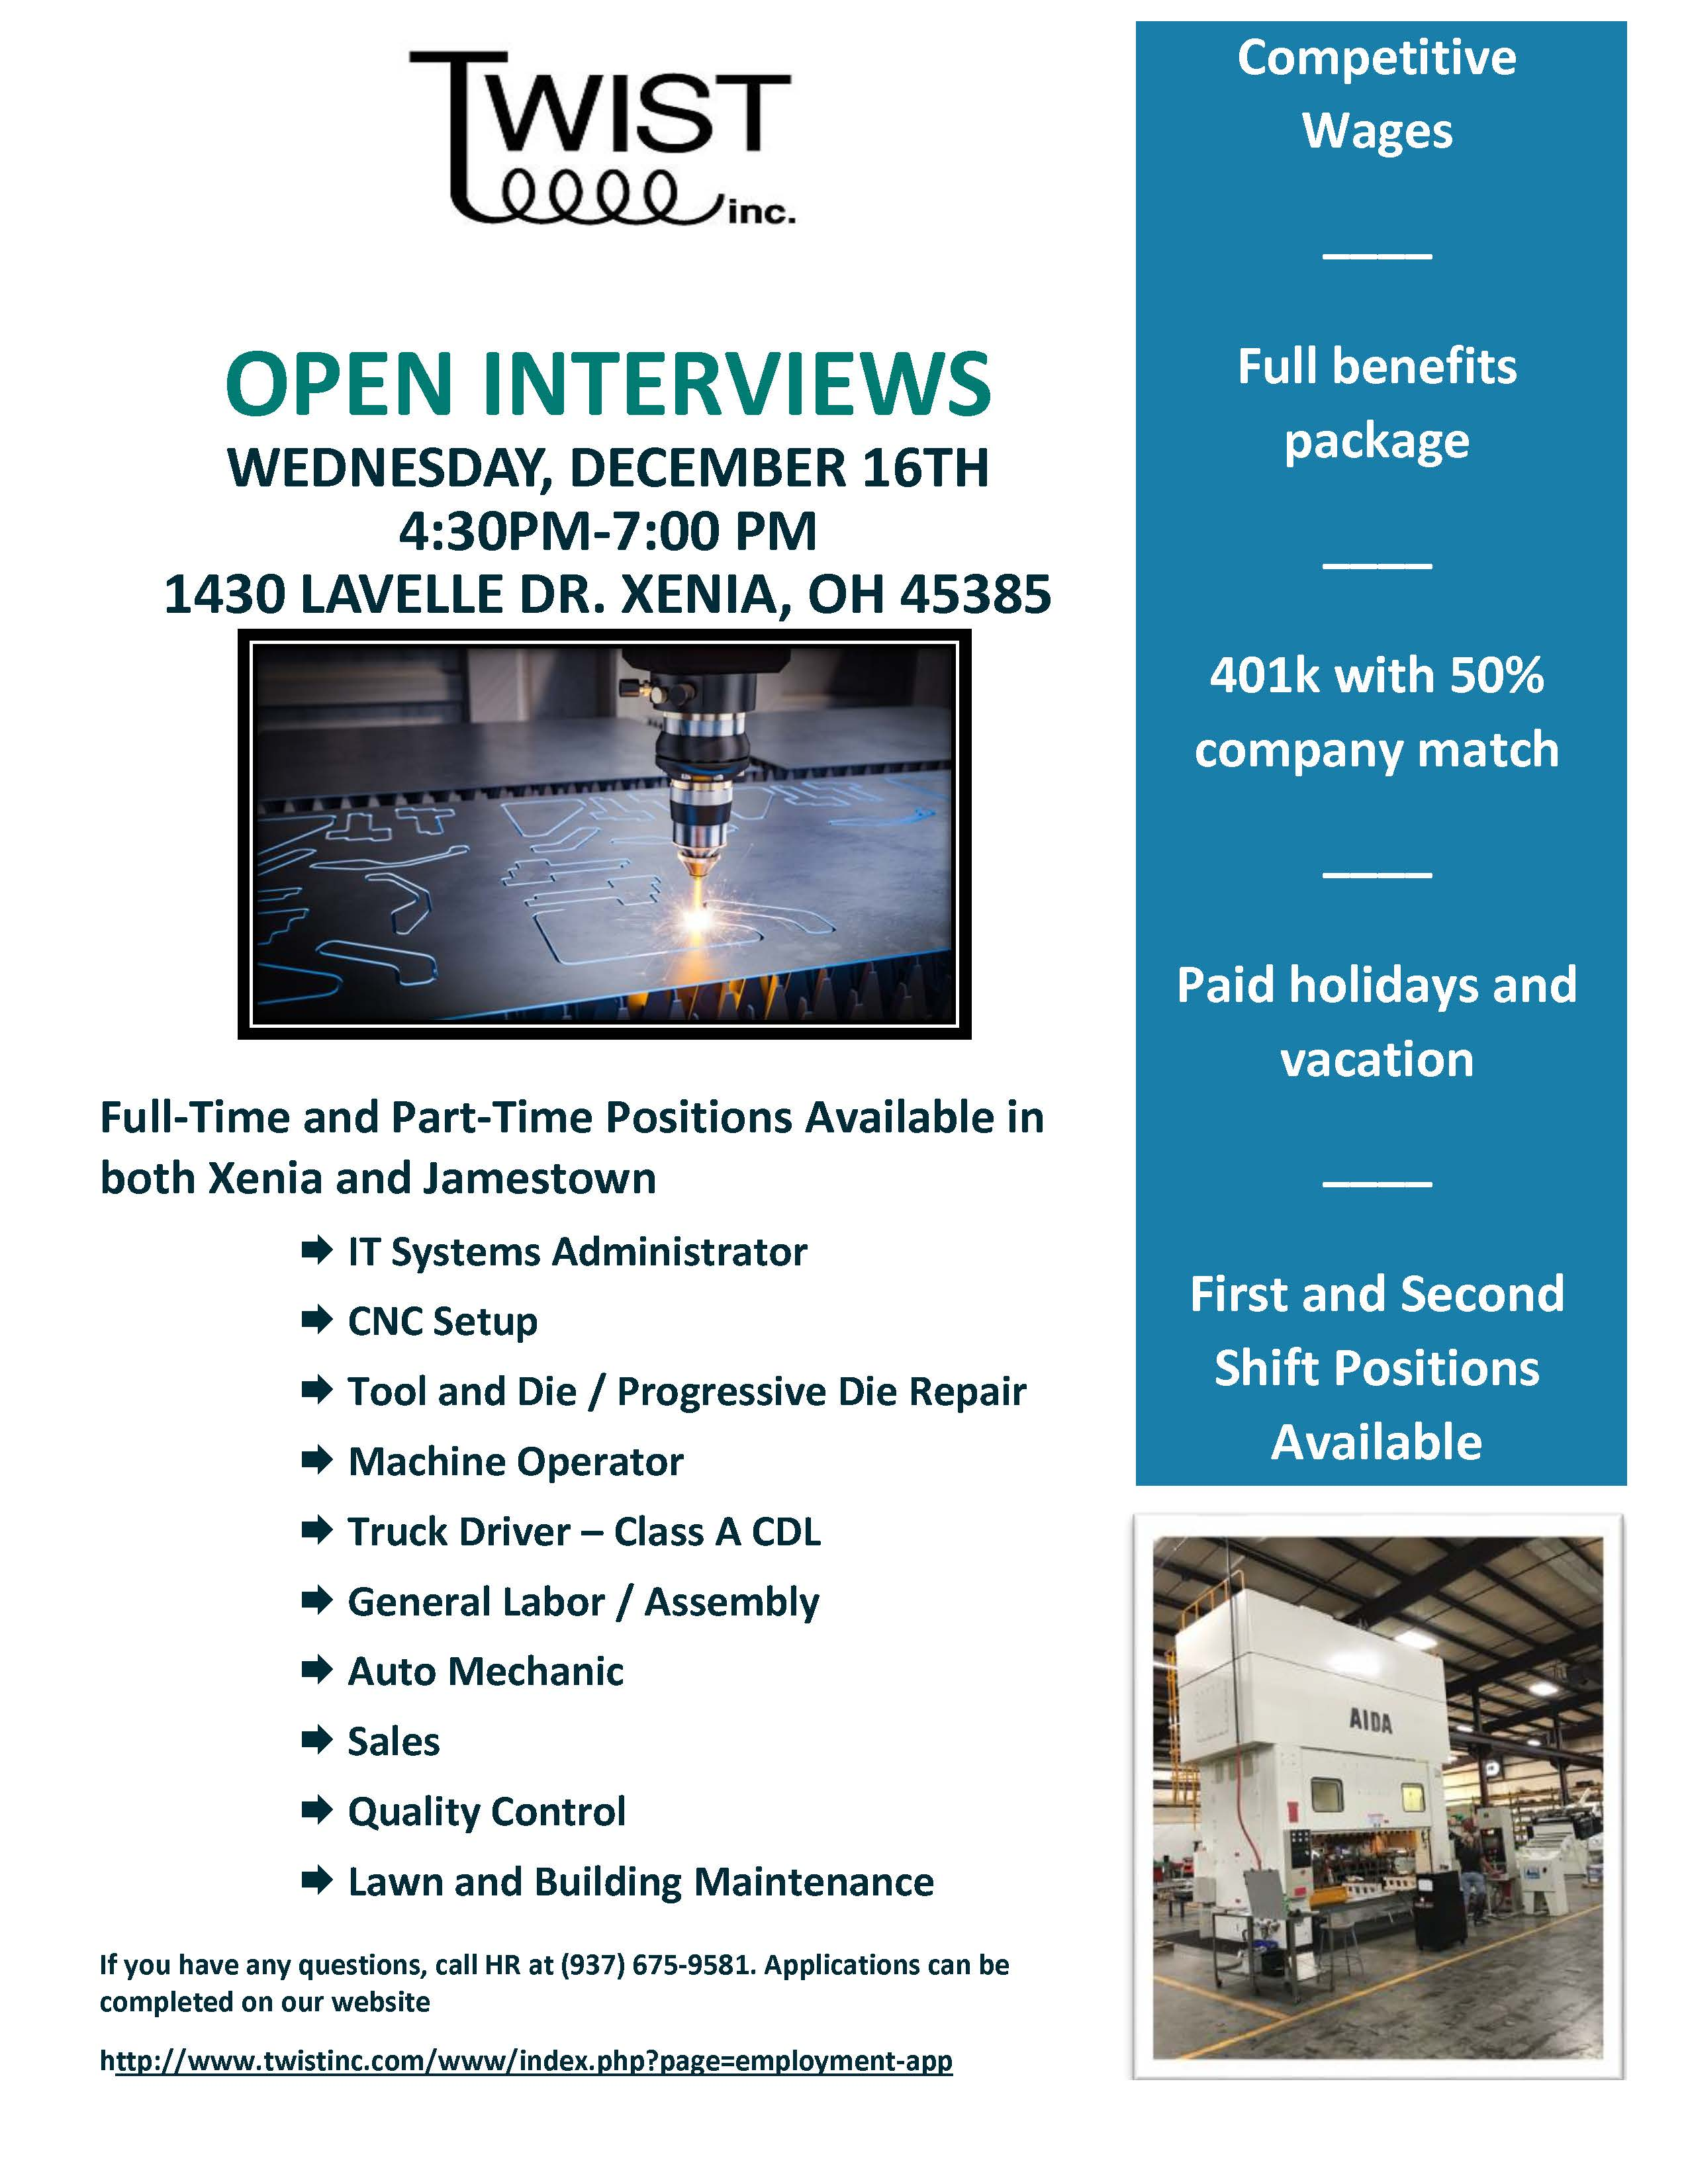 Twisy Open Interview Flyer 12 16 20 Page 1